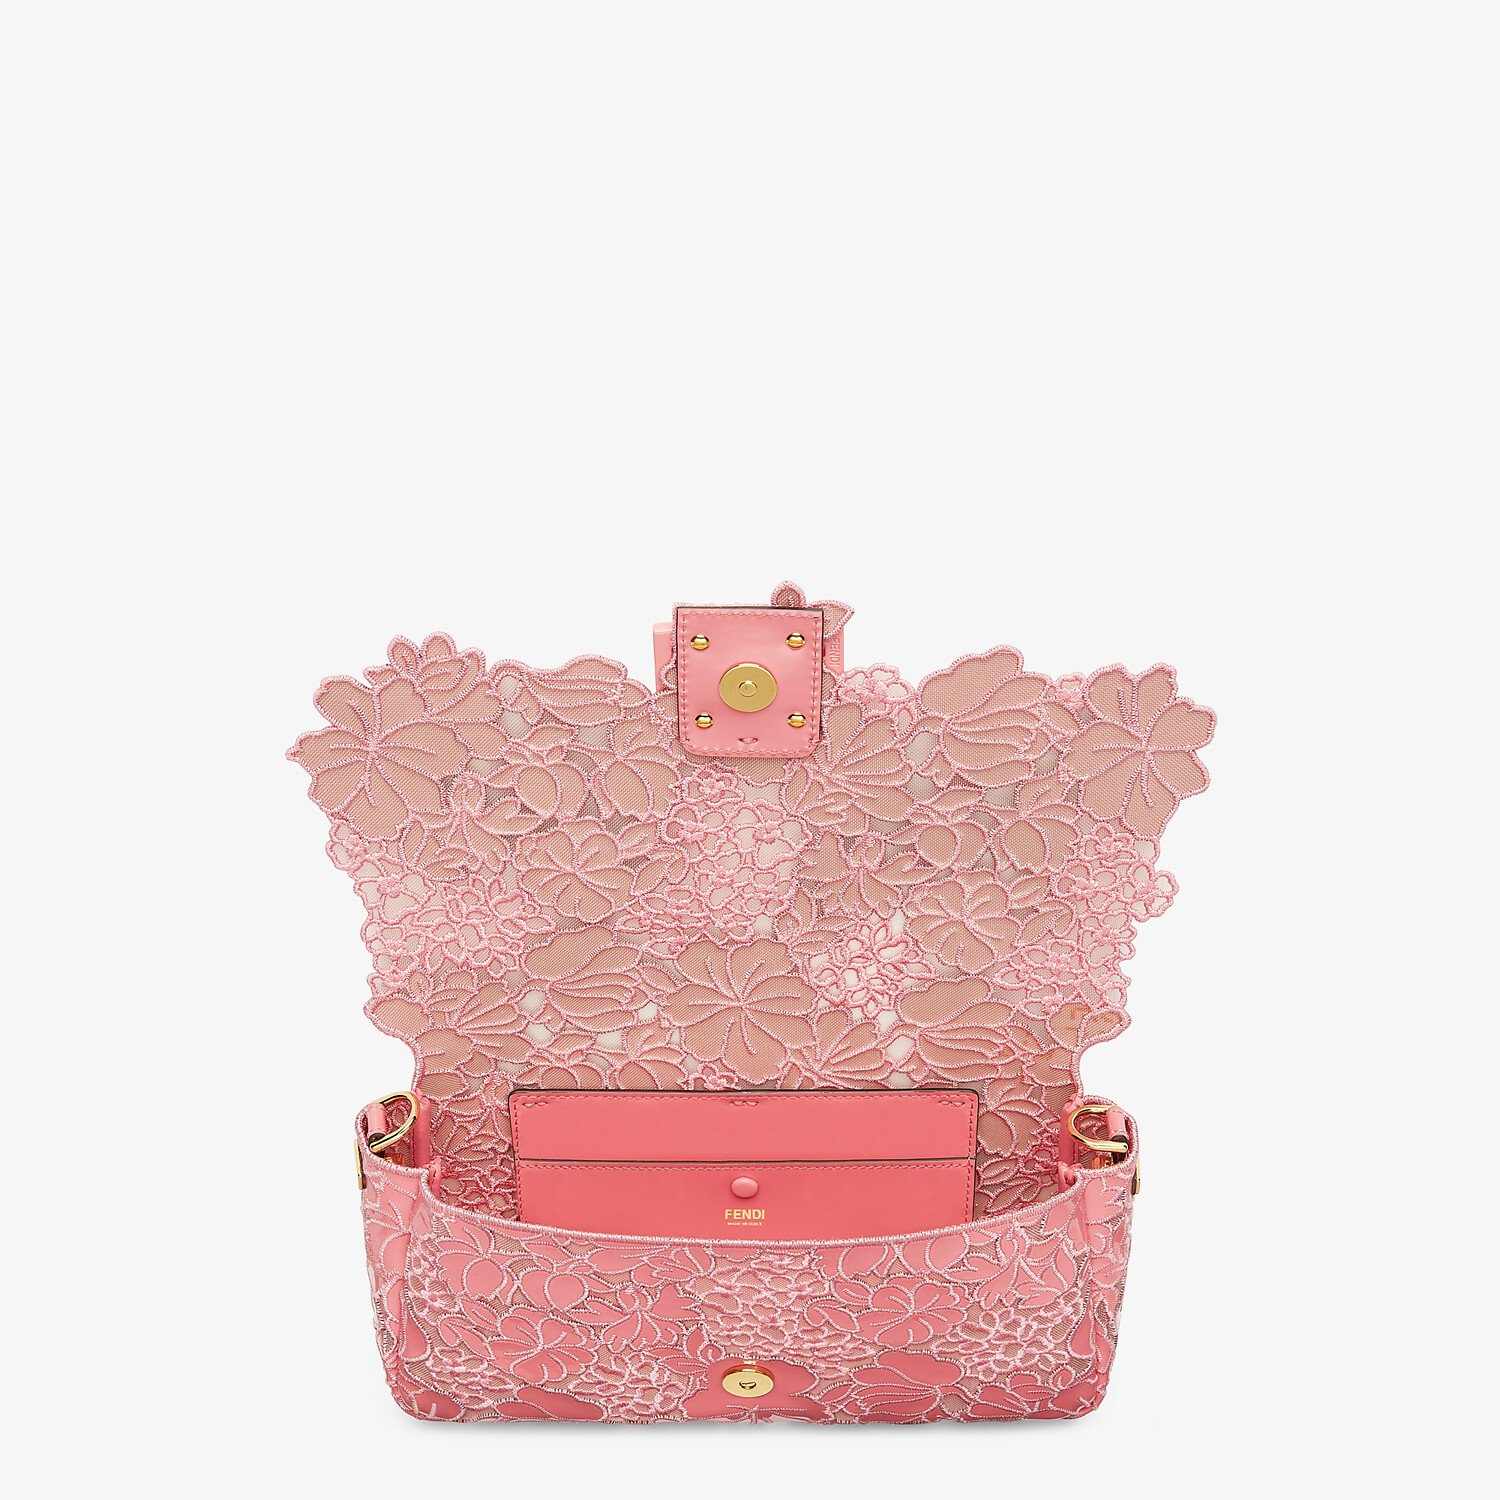 FENDI BAGUETTE - Embroidered pink patent leather bag - view 4 detail